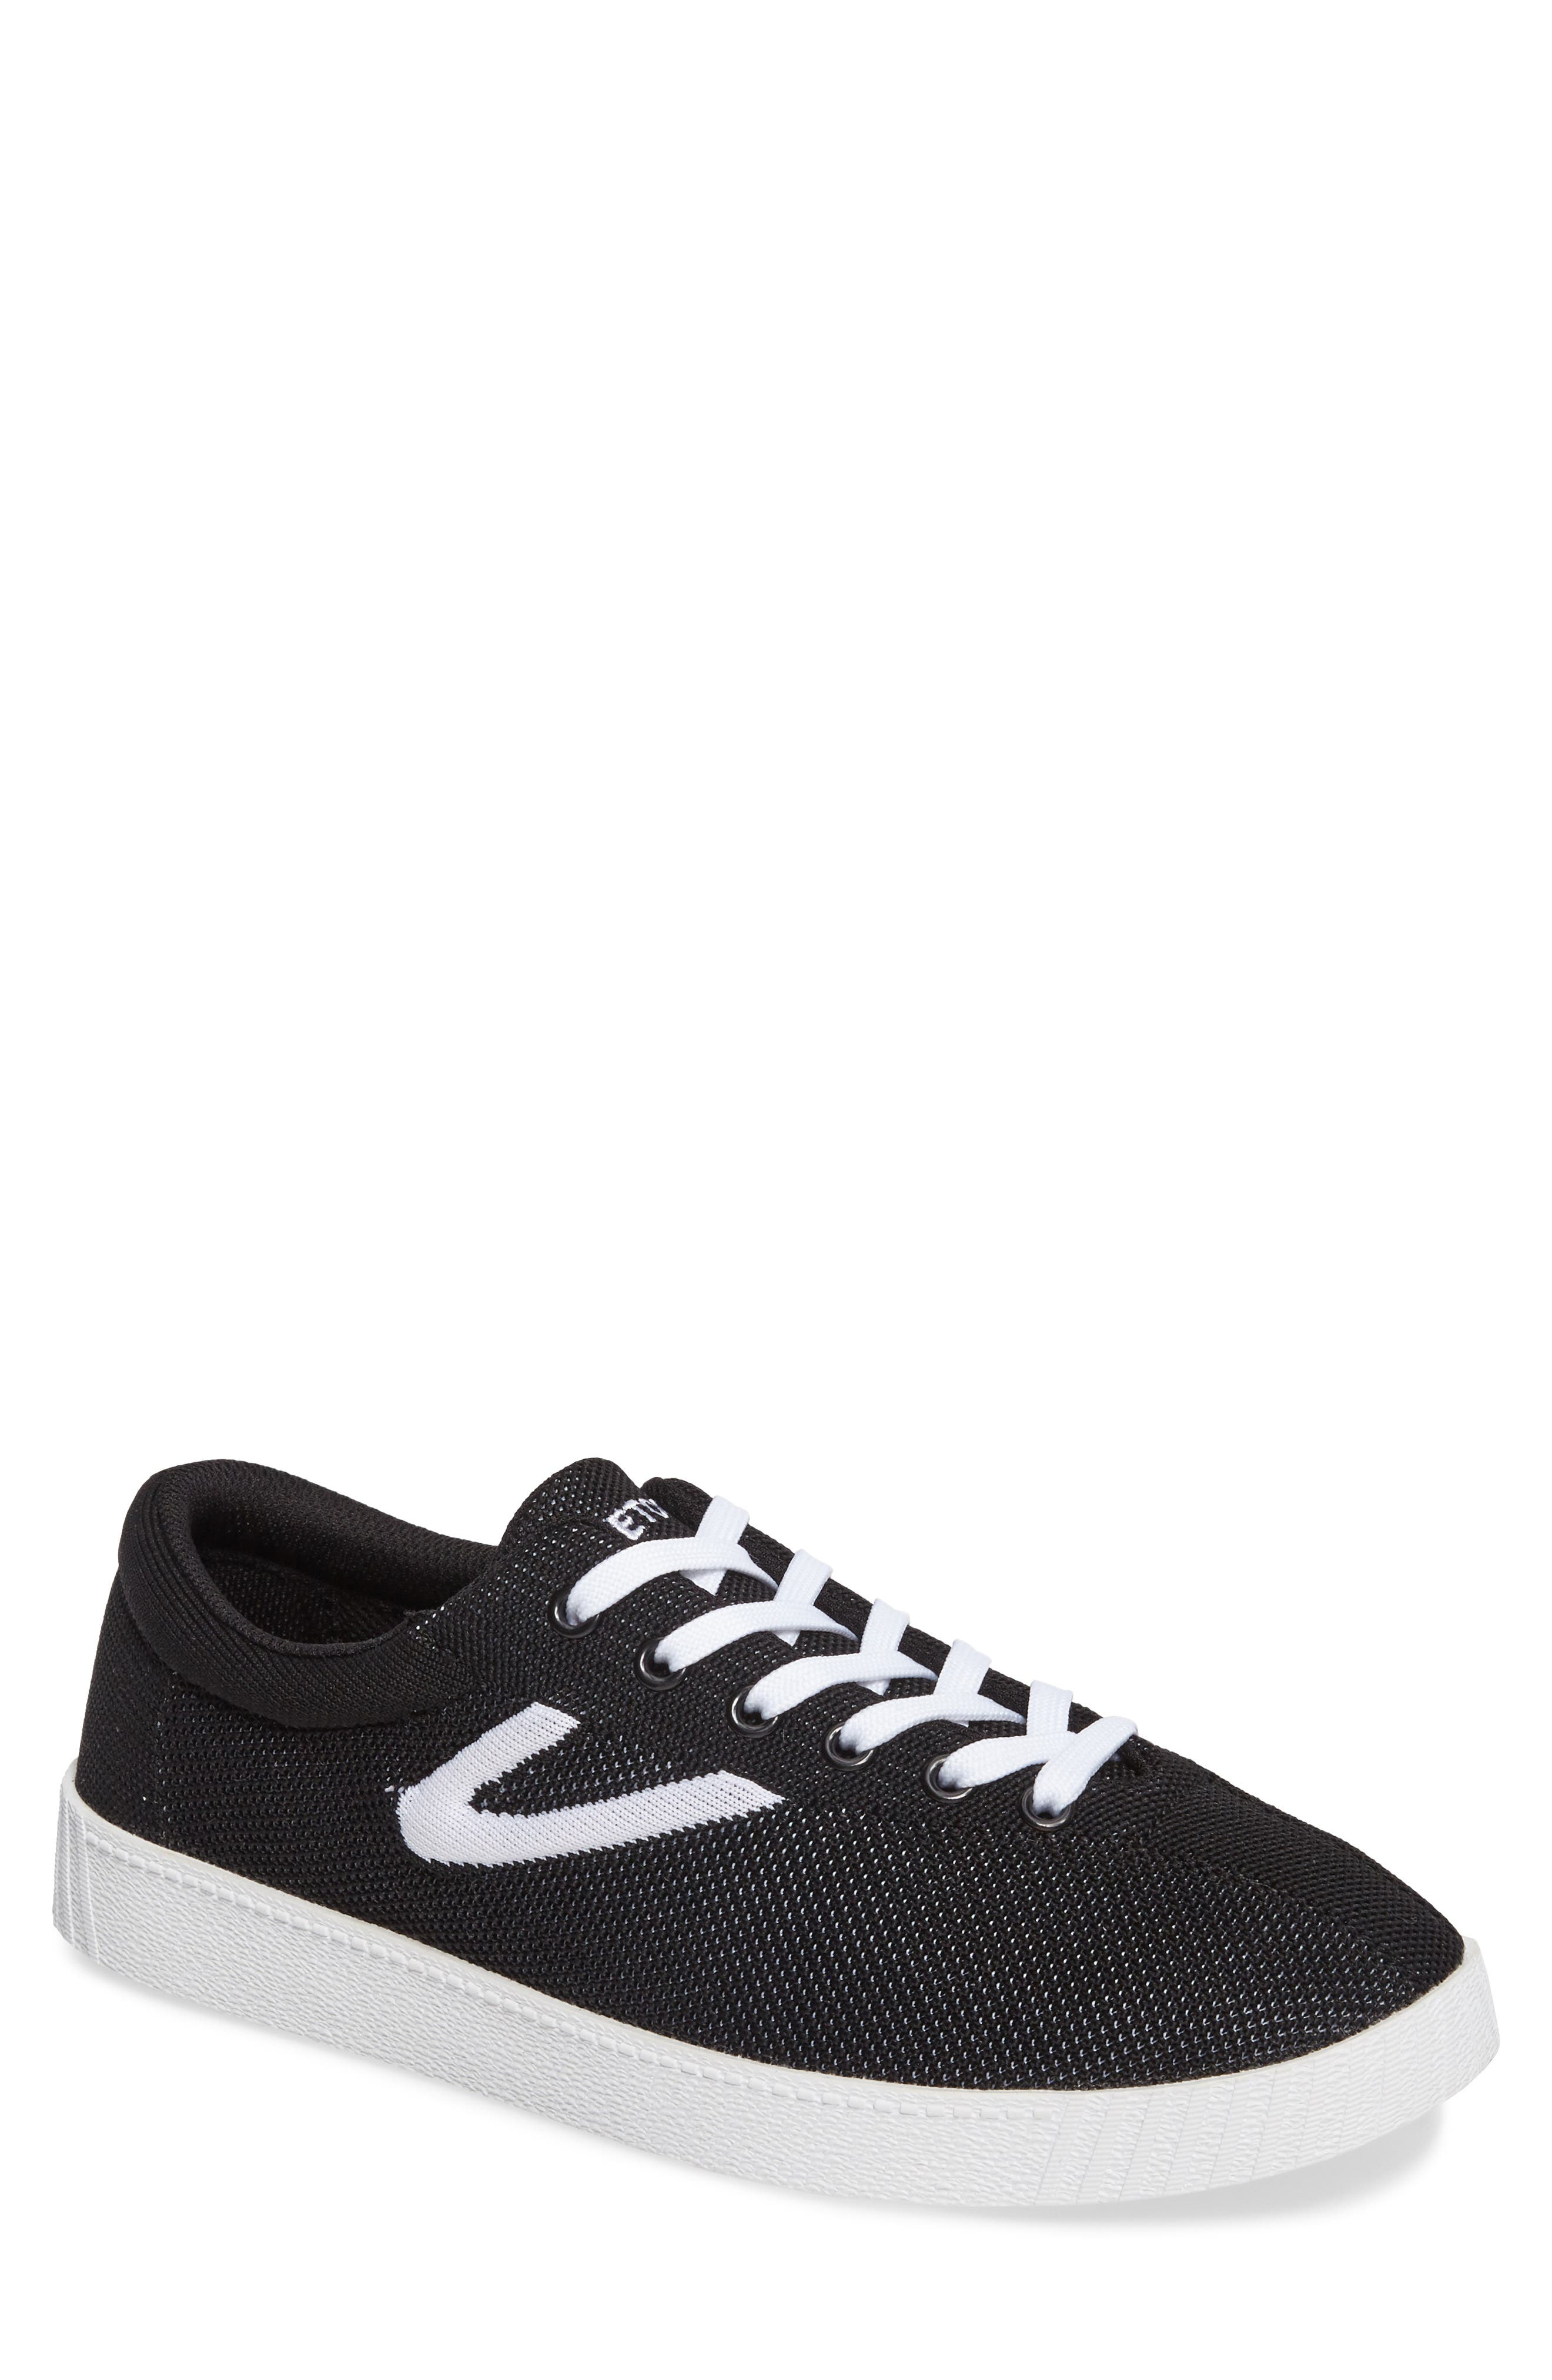 Nylite Knit Sneaker,                         Main,                         color, Black/ White